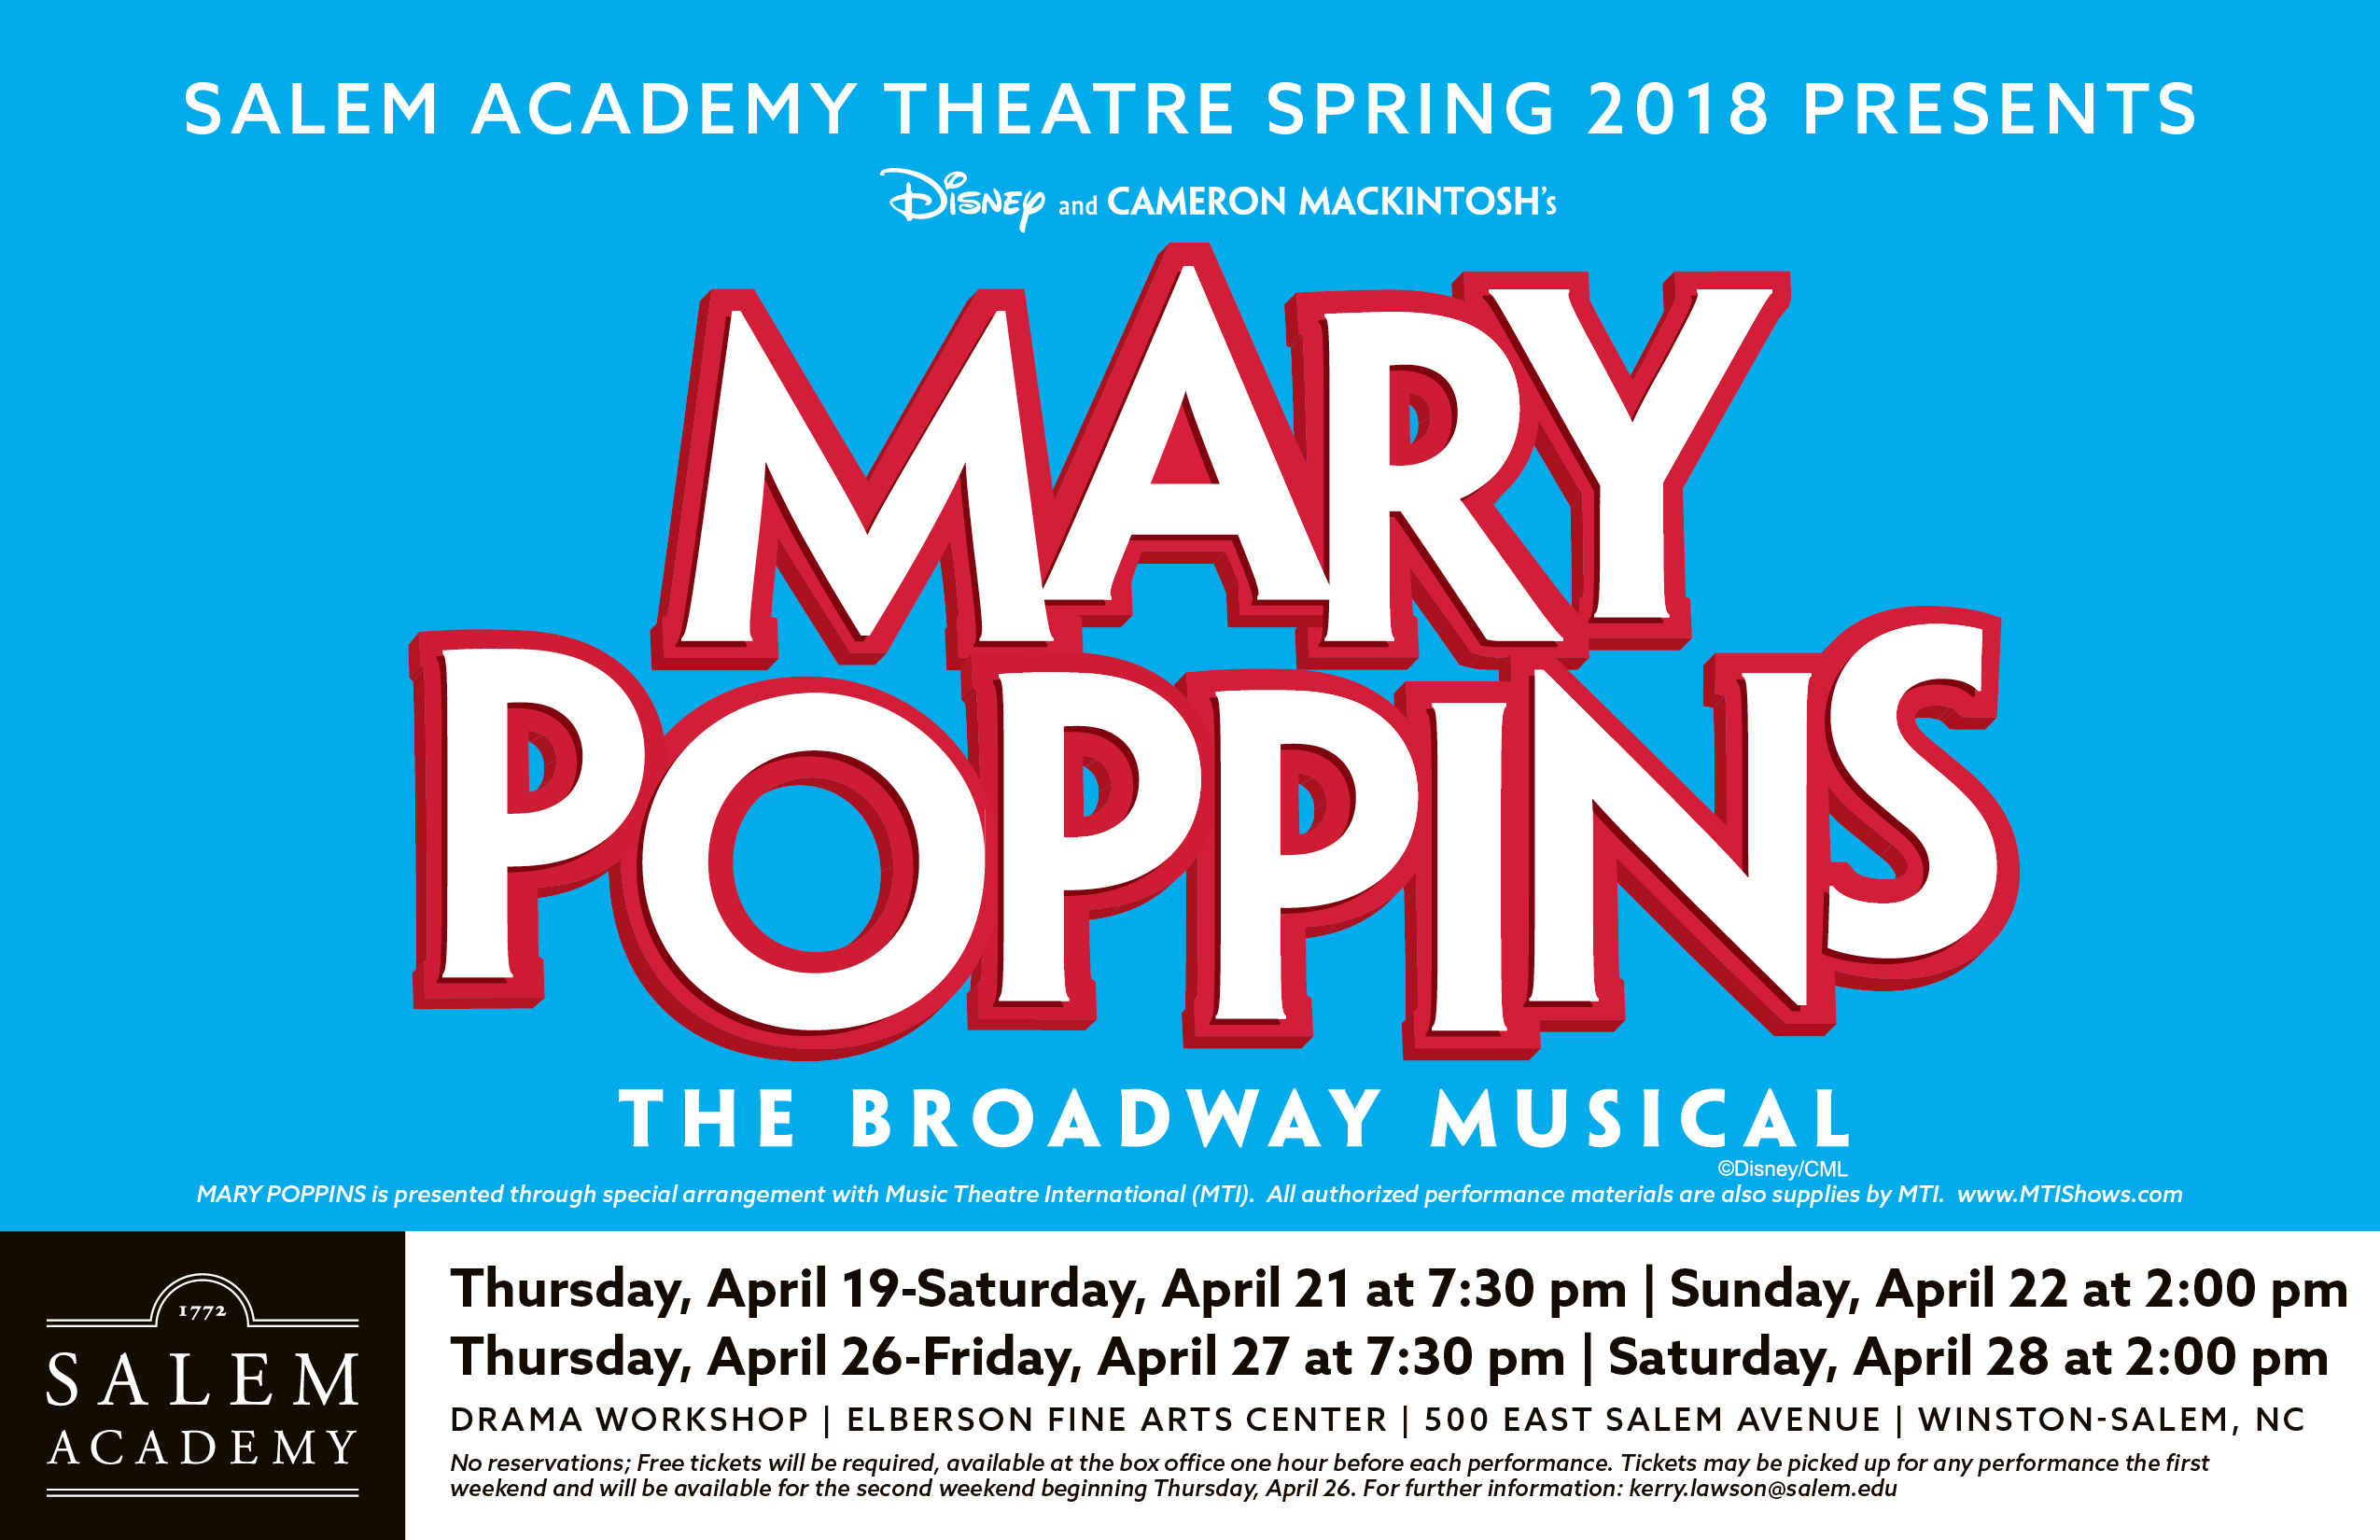 MARY POPPINS THE MUSICAL by Salem Academy